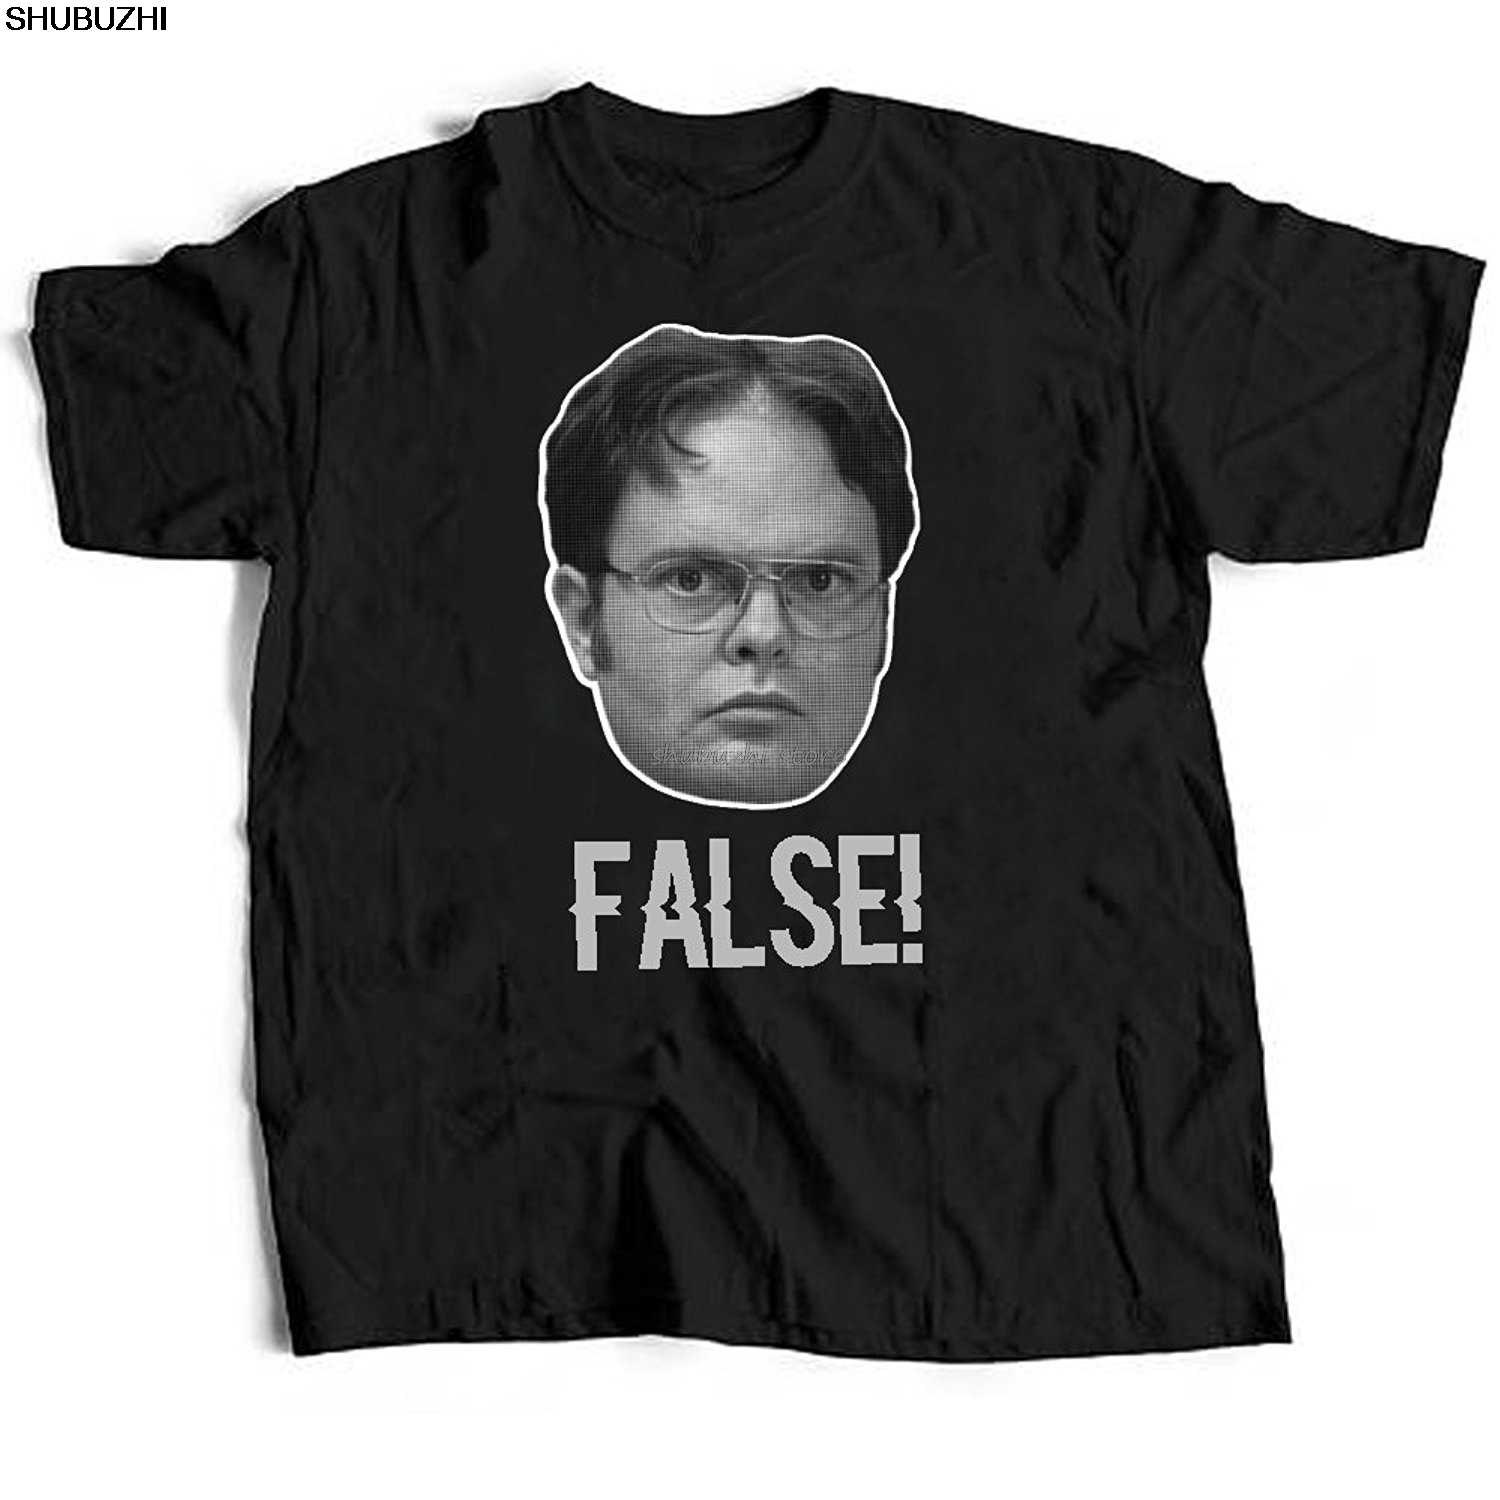 Ufficio Falso Dwight Schrute TV Show Adulti uomo Graphic Tee T-Shirt sbz1152